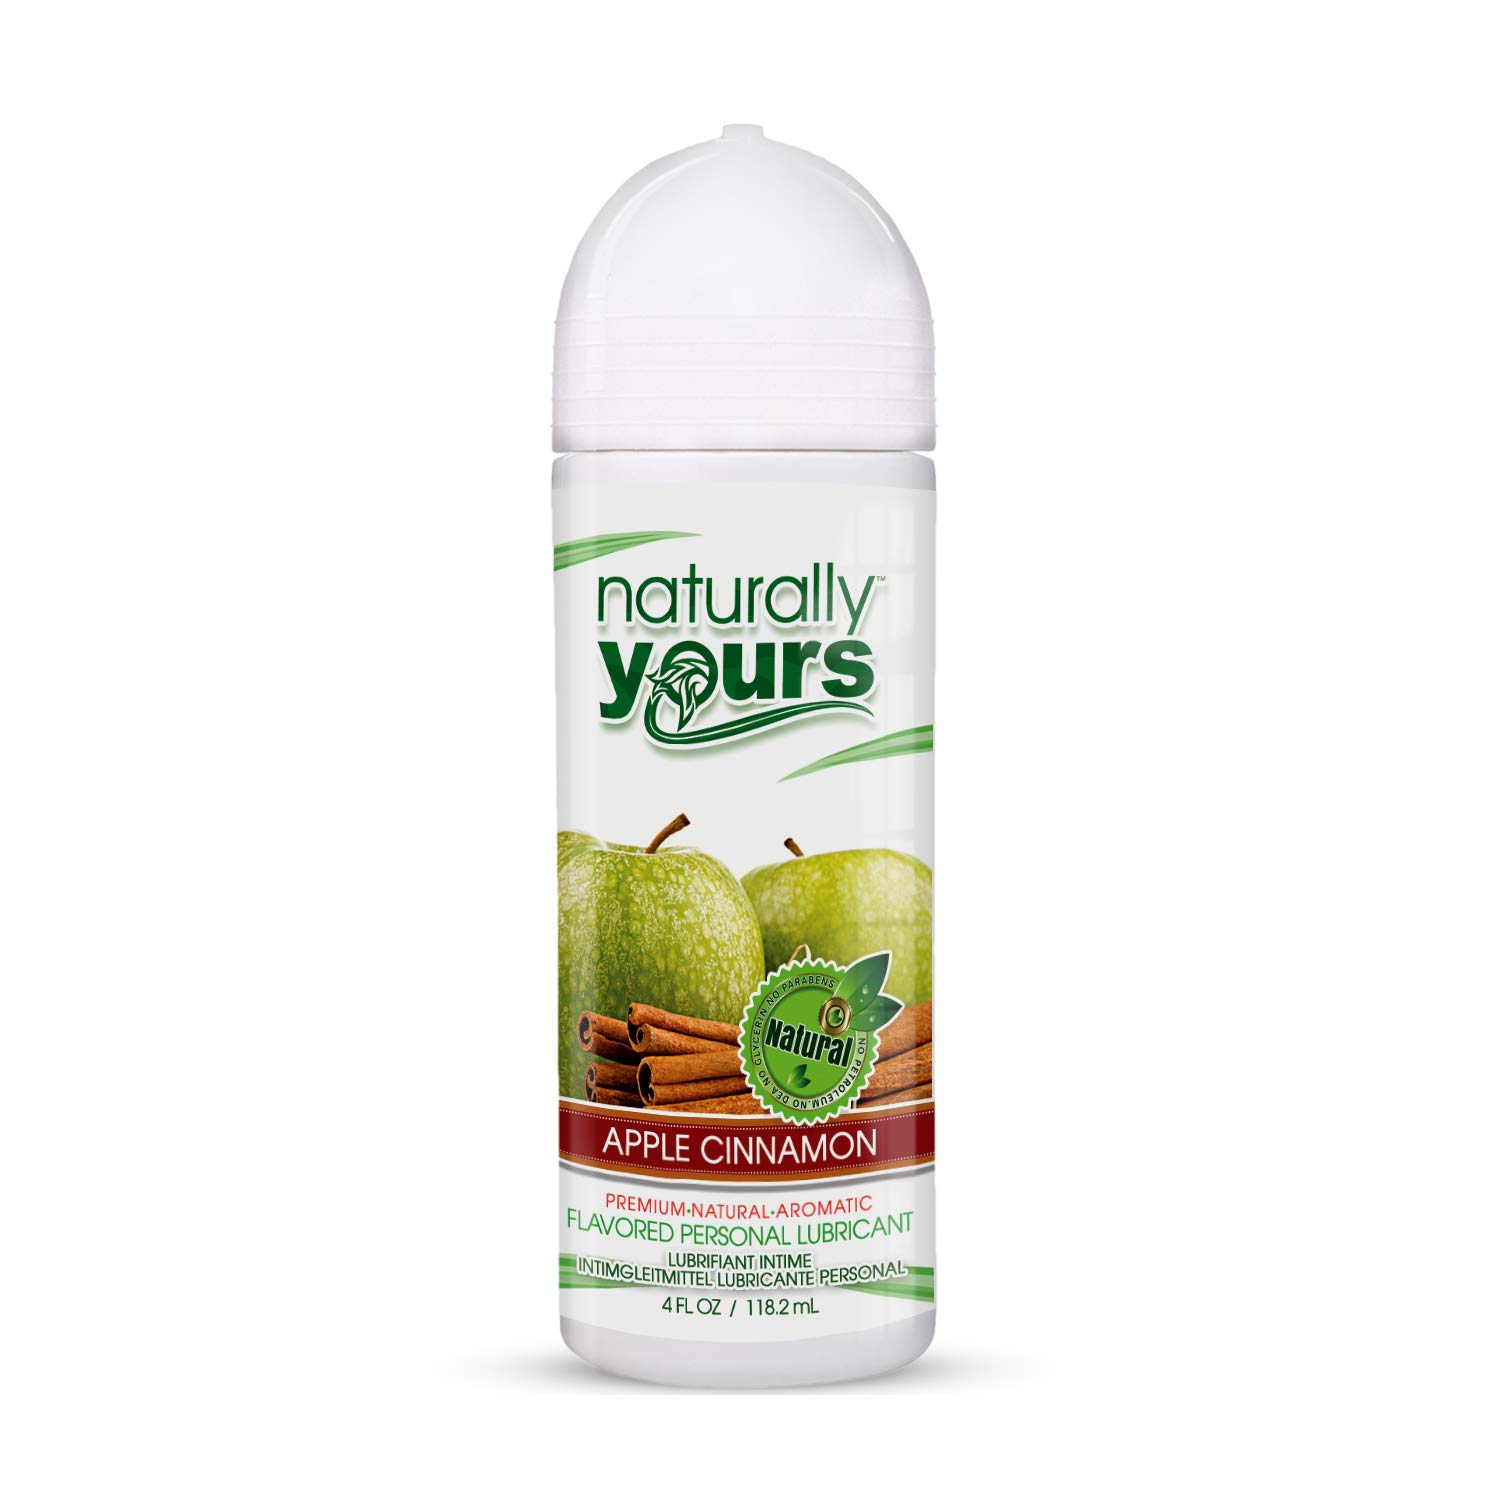 Naturally Yours - Apple Cinnamon Flavored, Natural Personal Lubricant 4 oz - Glycerin and Paraben Free